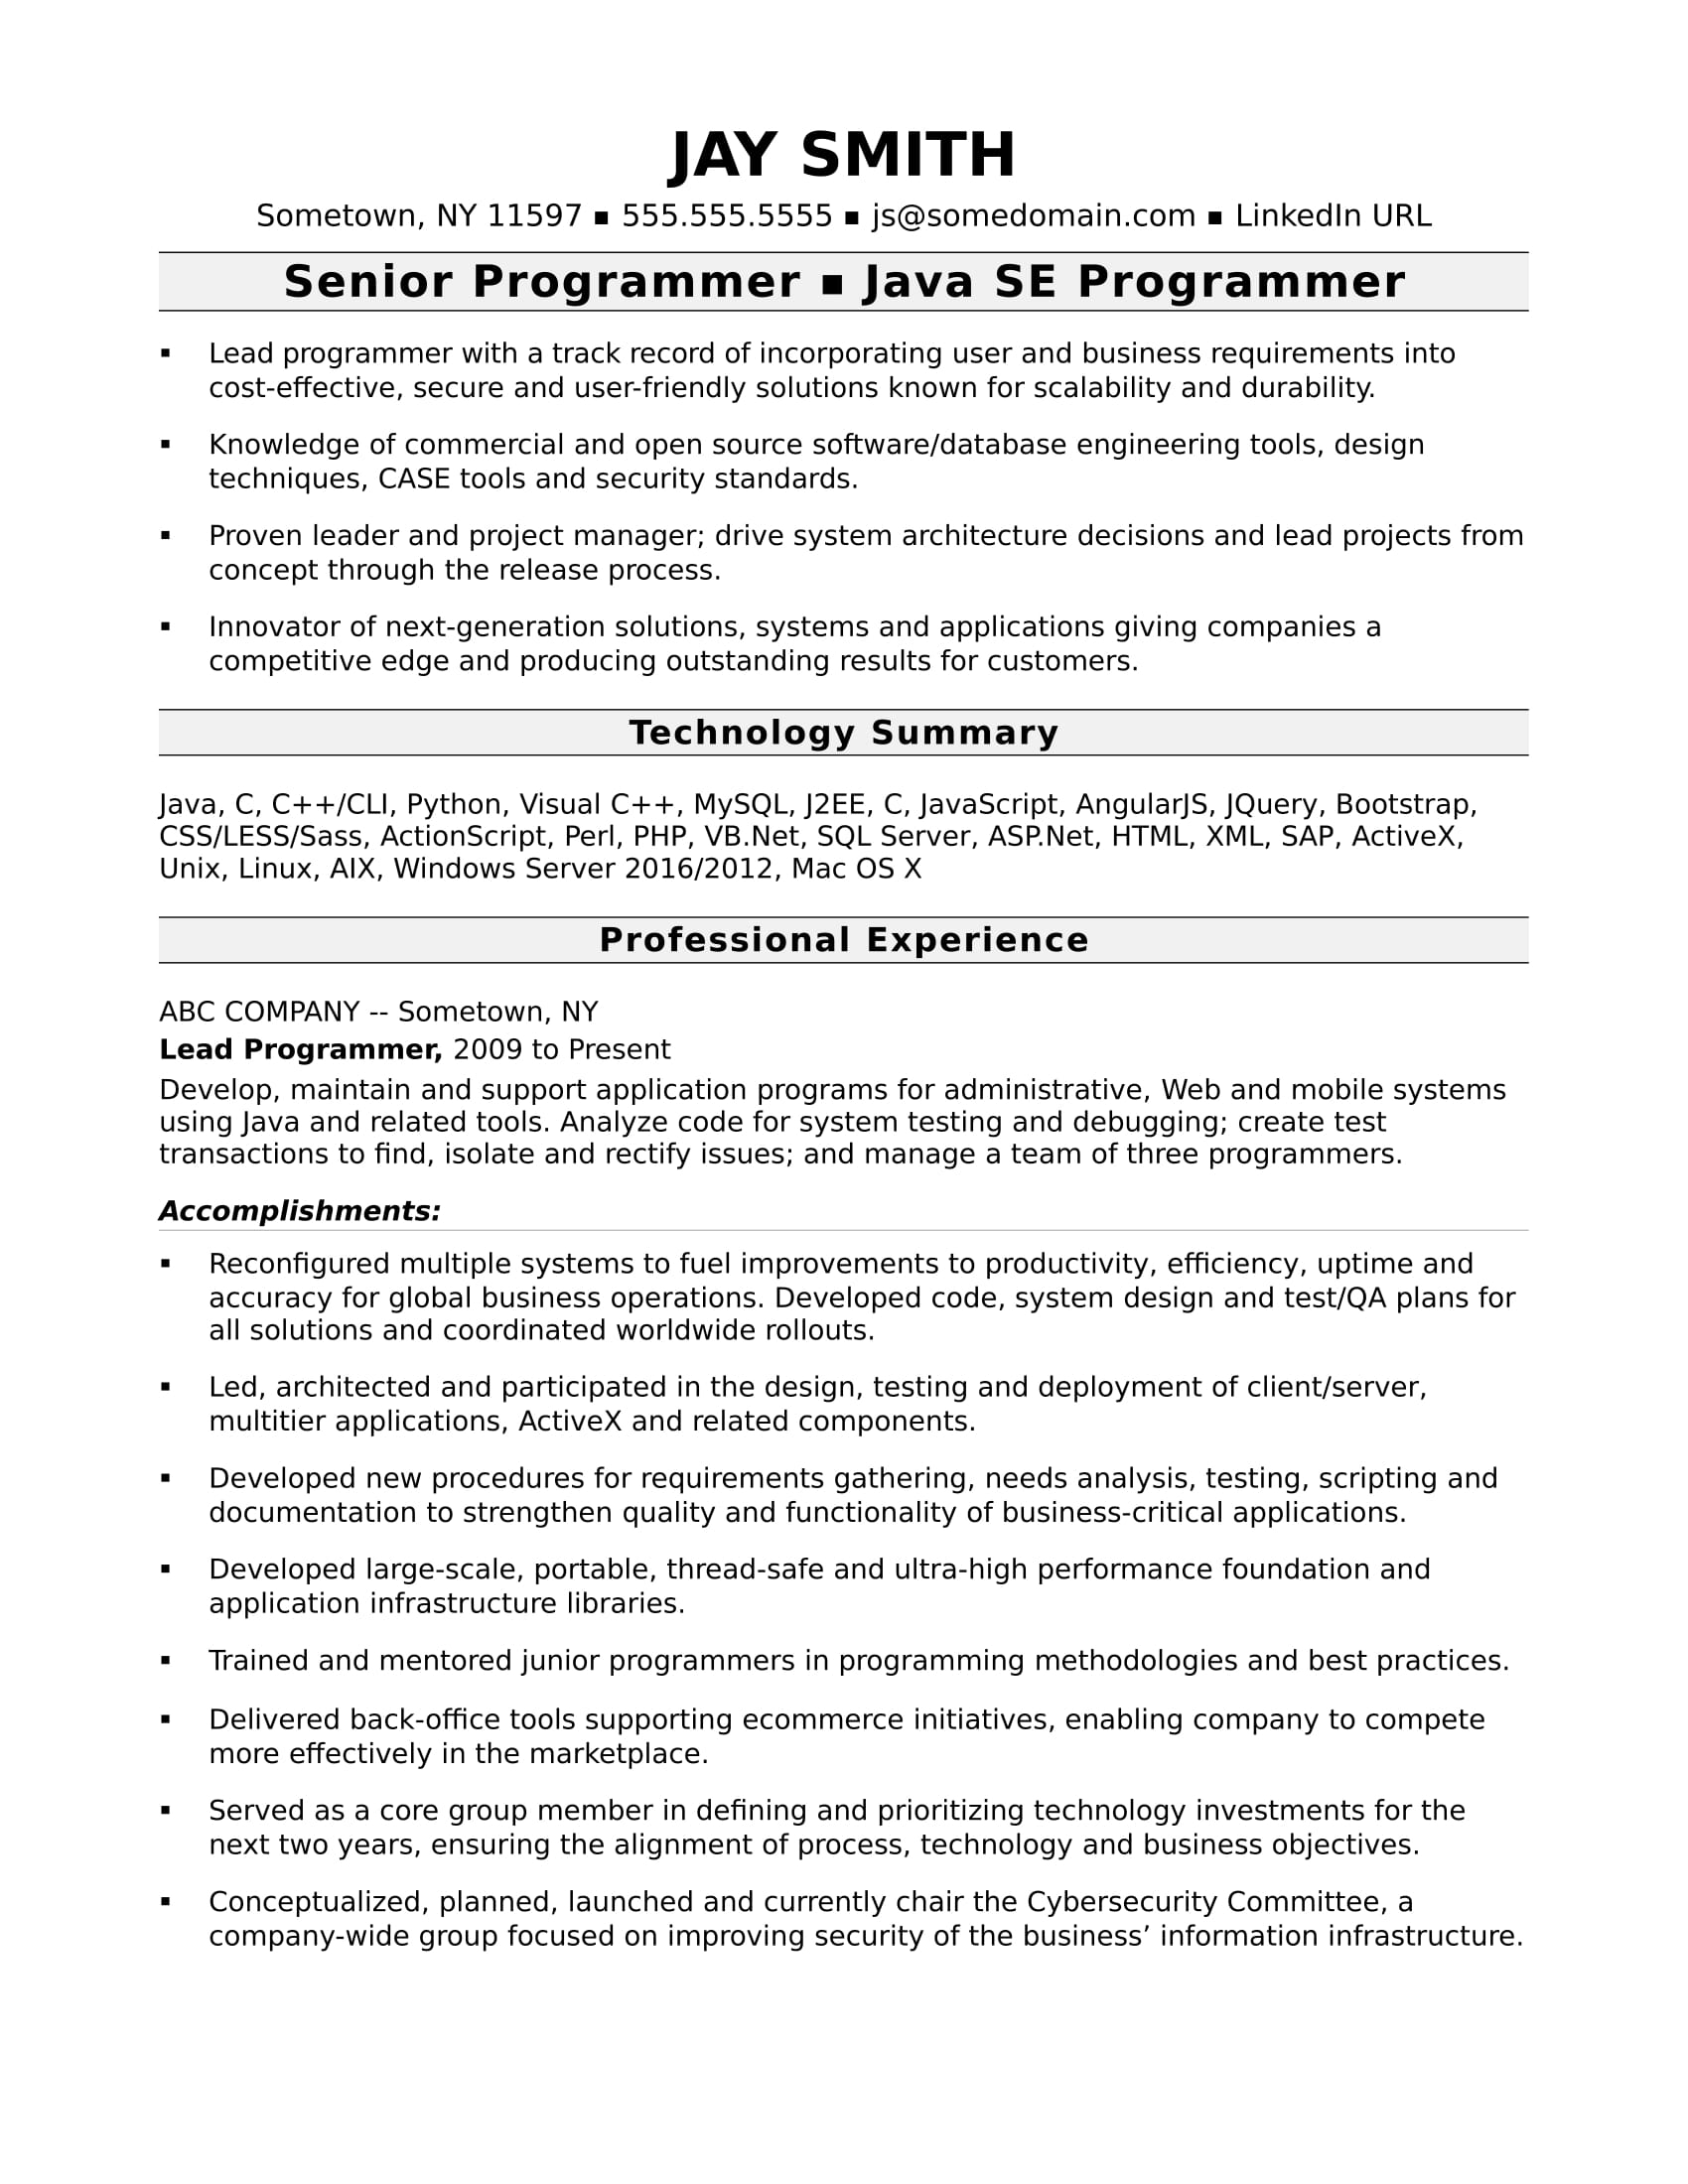 sample resume for an experienced computer programmer - Angularjs Developer Resume